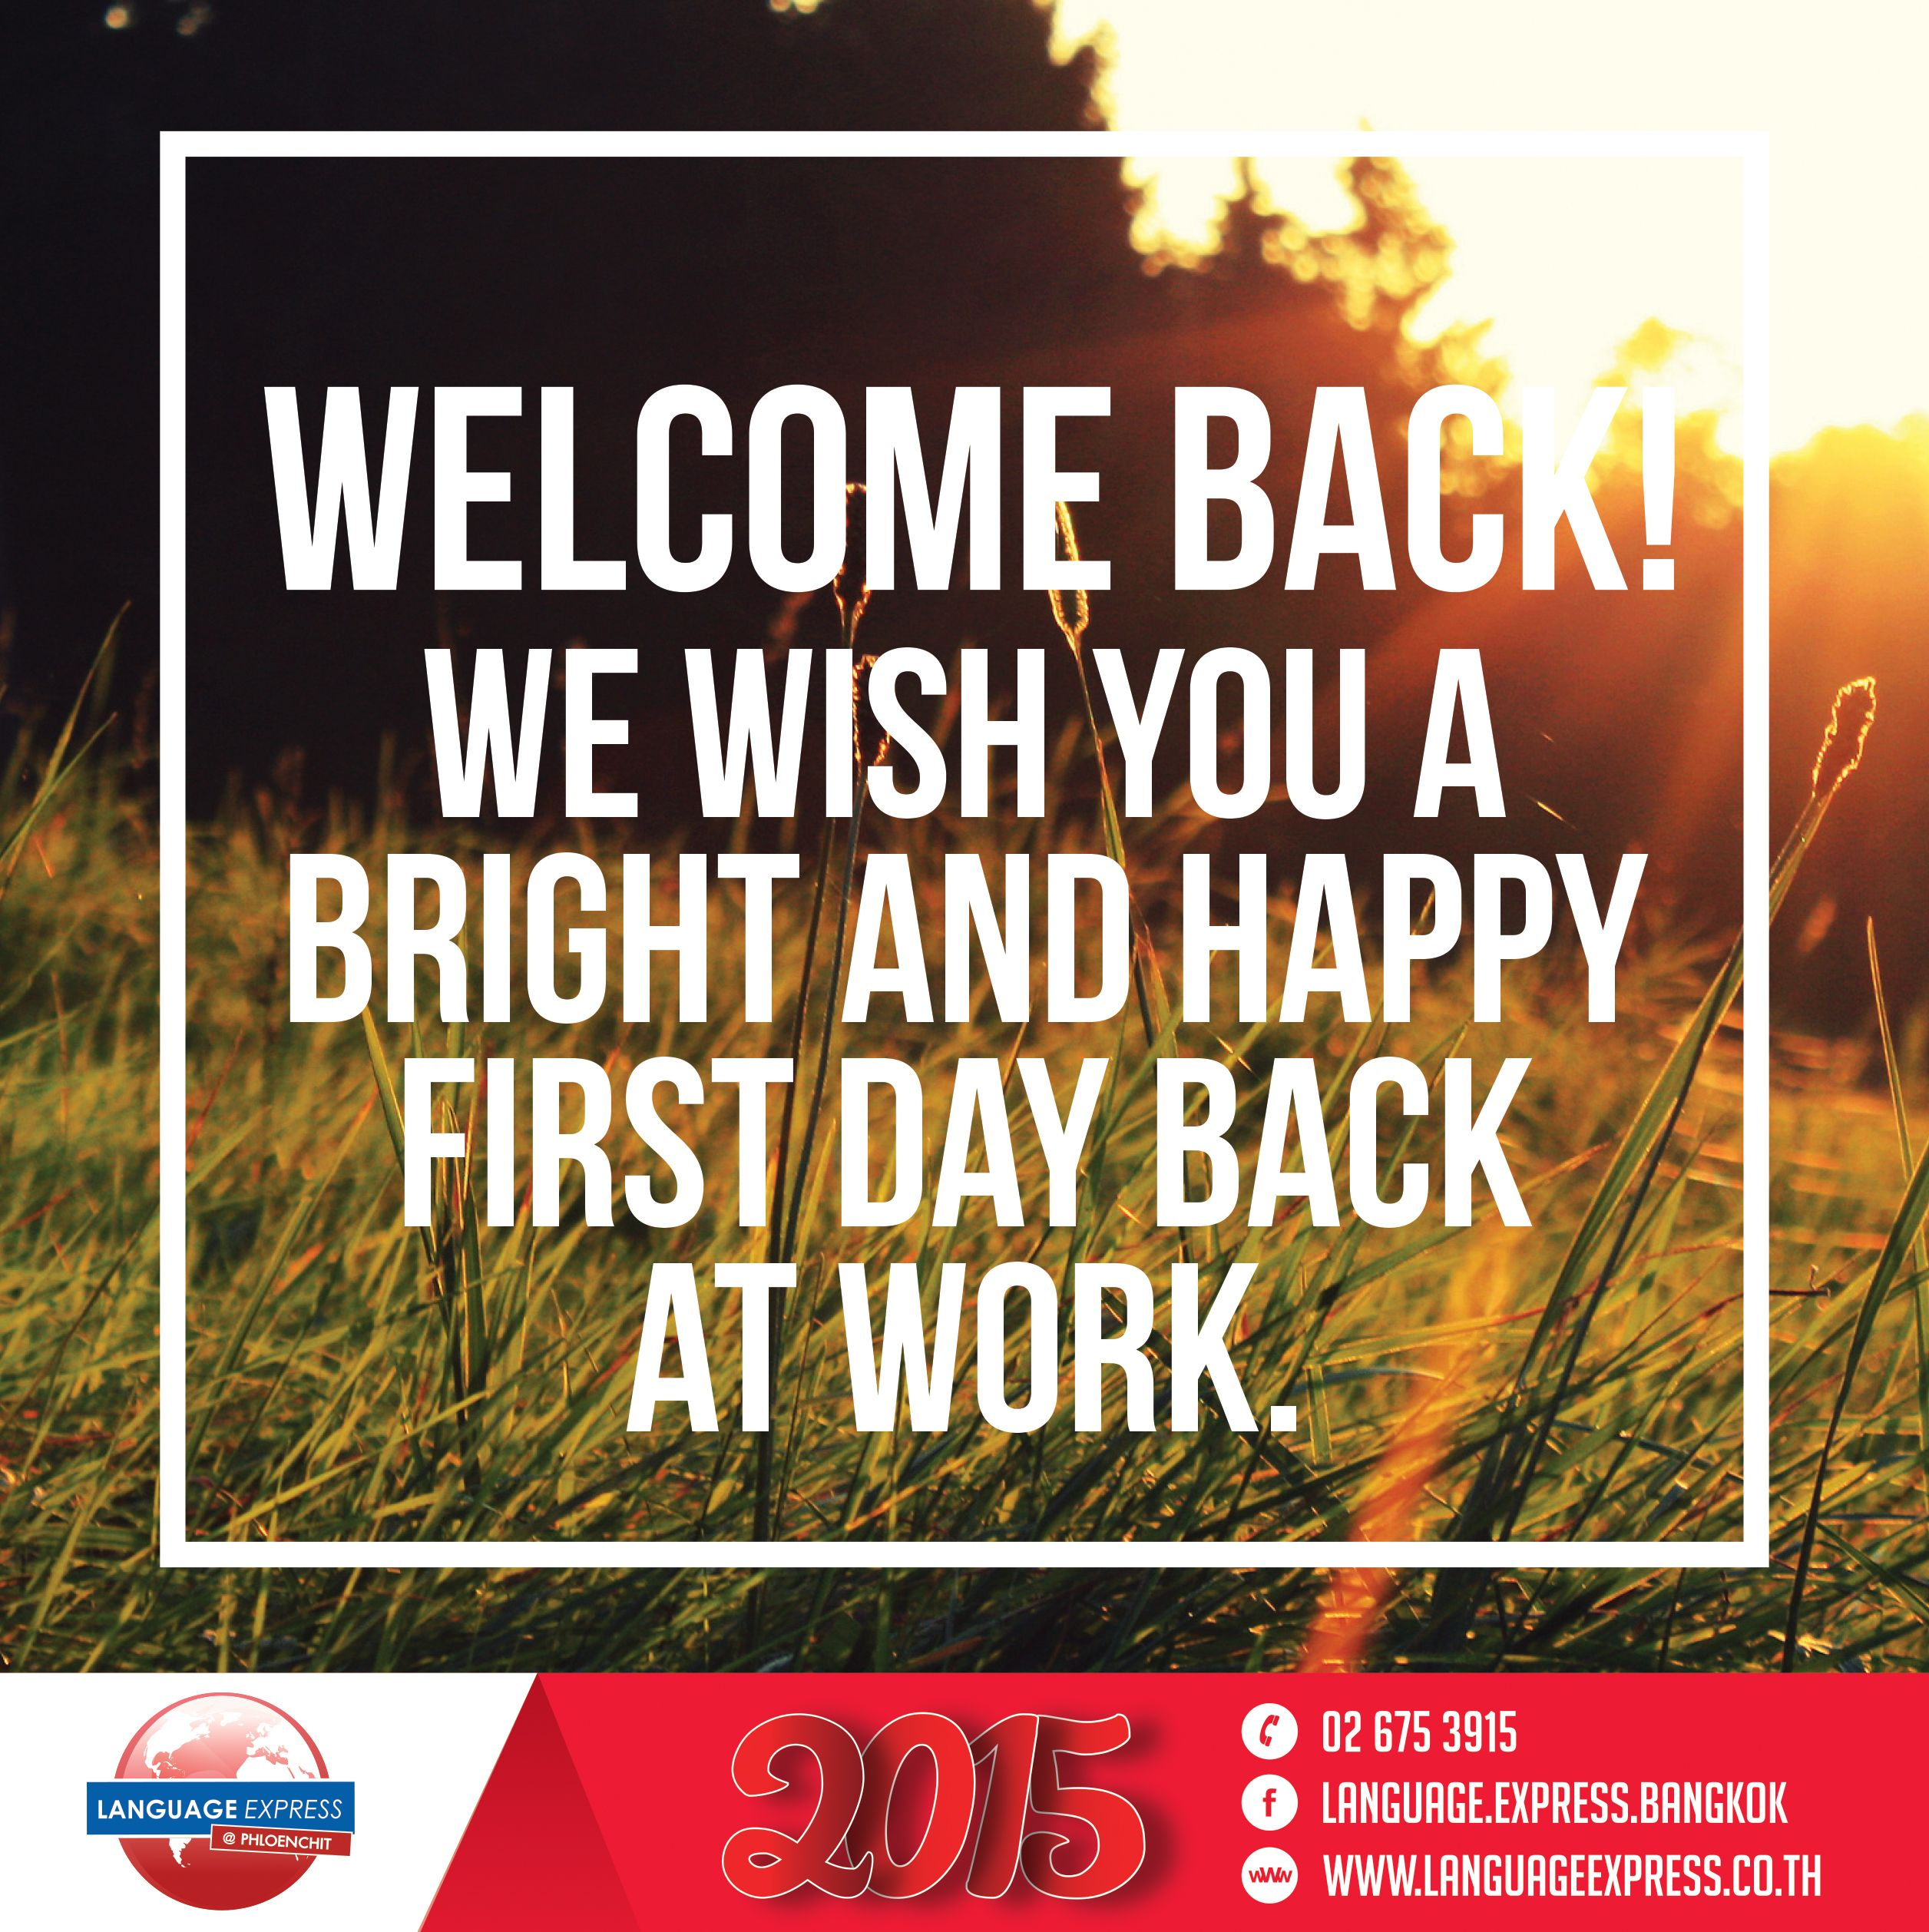 back! We wish you a bright and happy first day